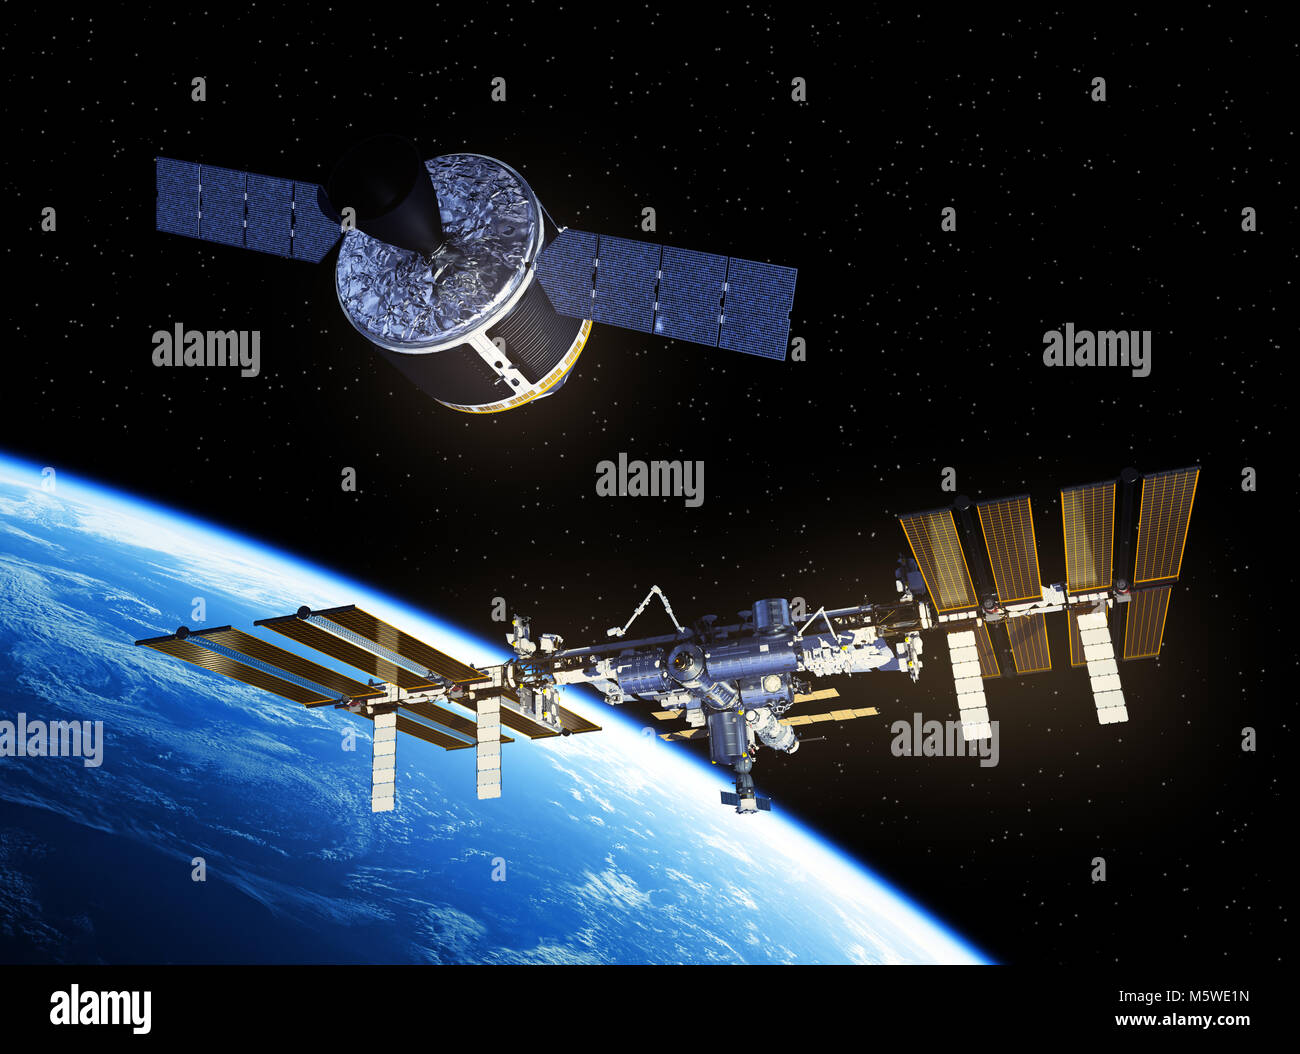 Cargo Spaceship Is Preparing To Dock With International Space Station - Stock Image